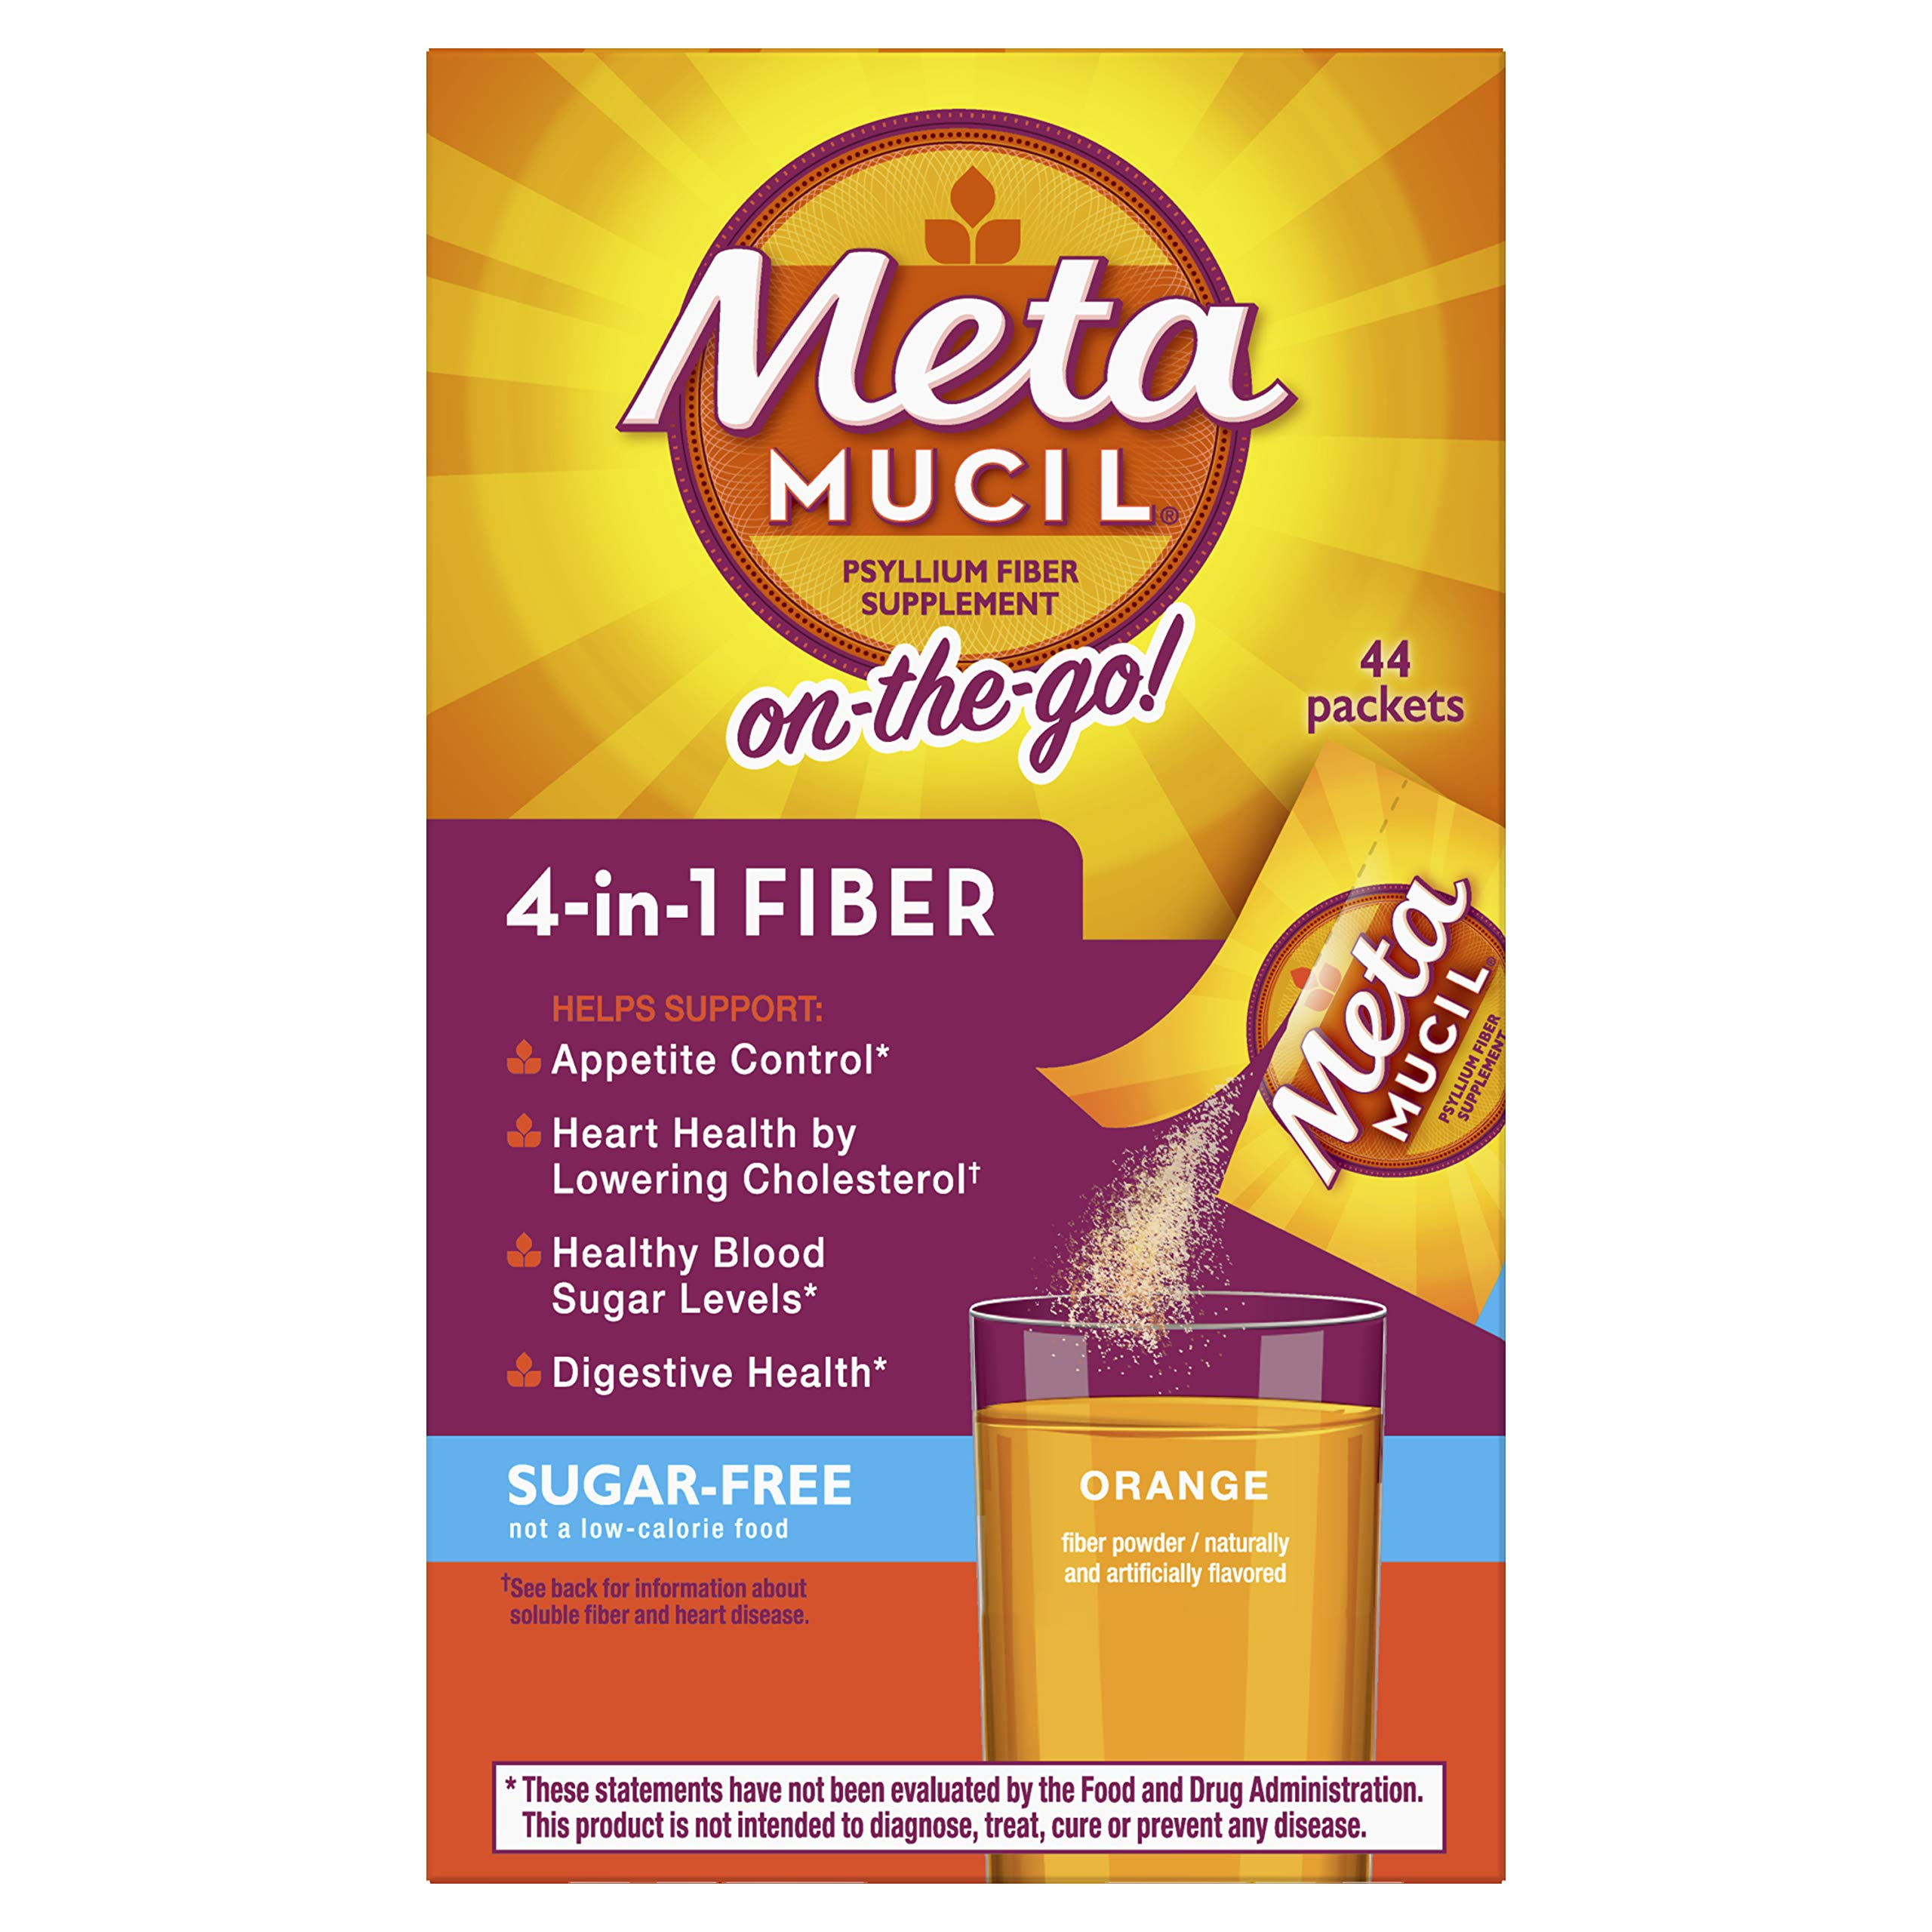 Metamucil Fiber, 4-in-1 Psyllium Fiber Supplement, Sugar-Free Powder Single-Serve Packets, Orange Flavored Drink, 44 Packets (Packaging May Vary)